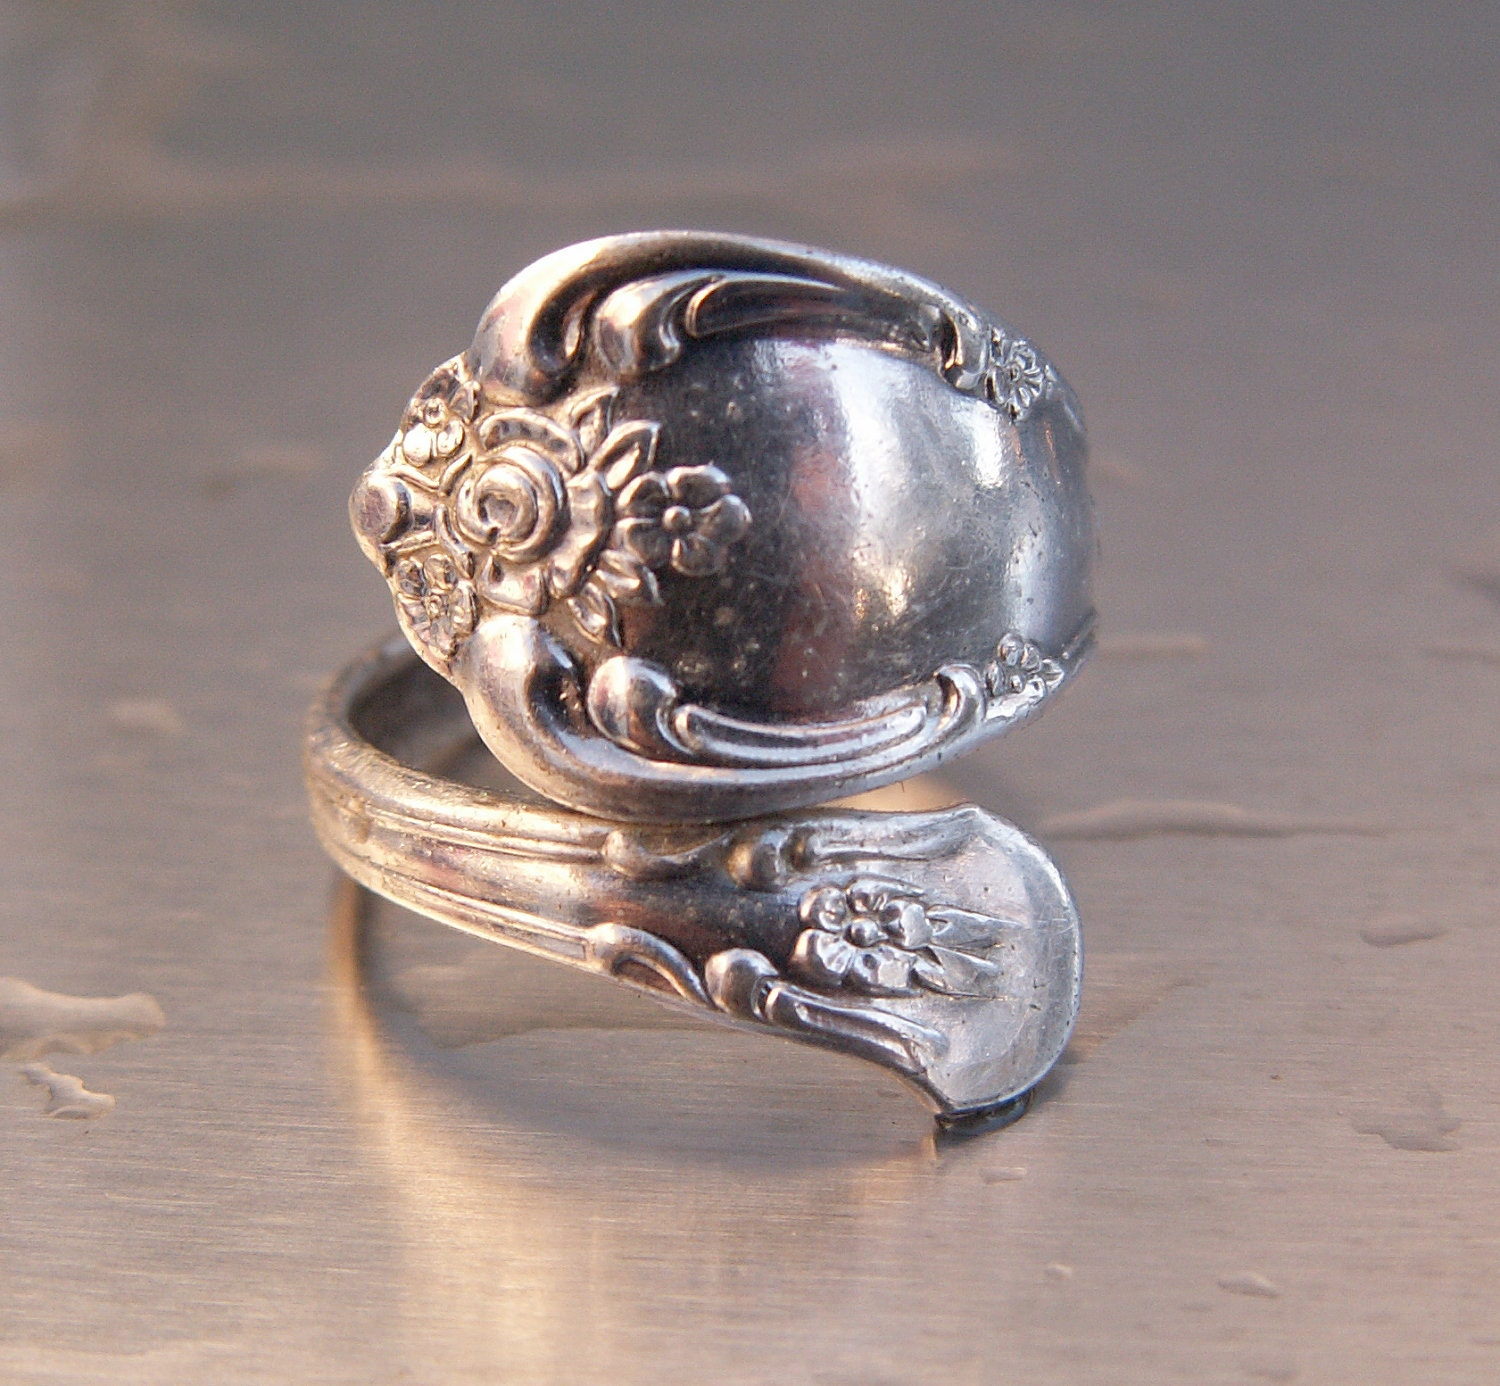 Vintage Ring Silver Oneida Spoon Ring Wm A Rogers Design